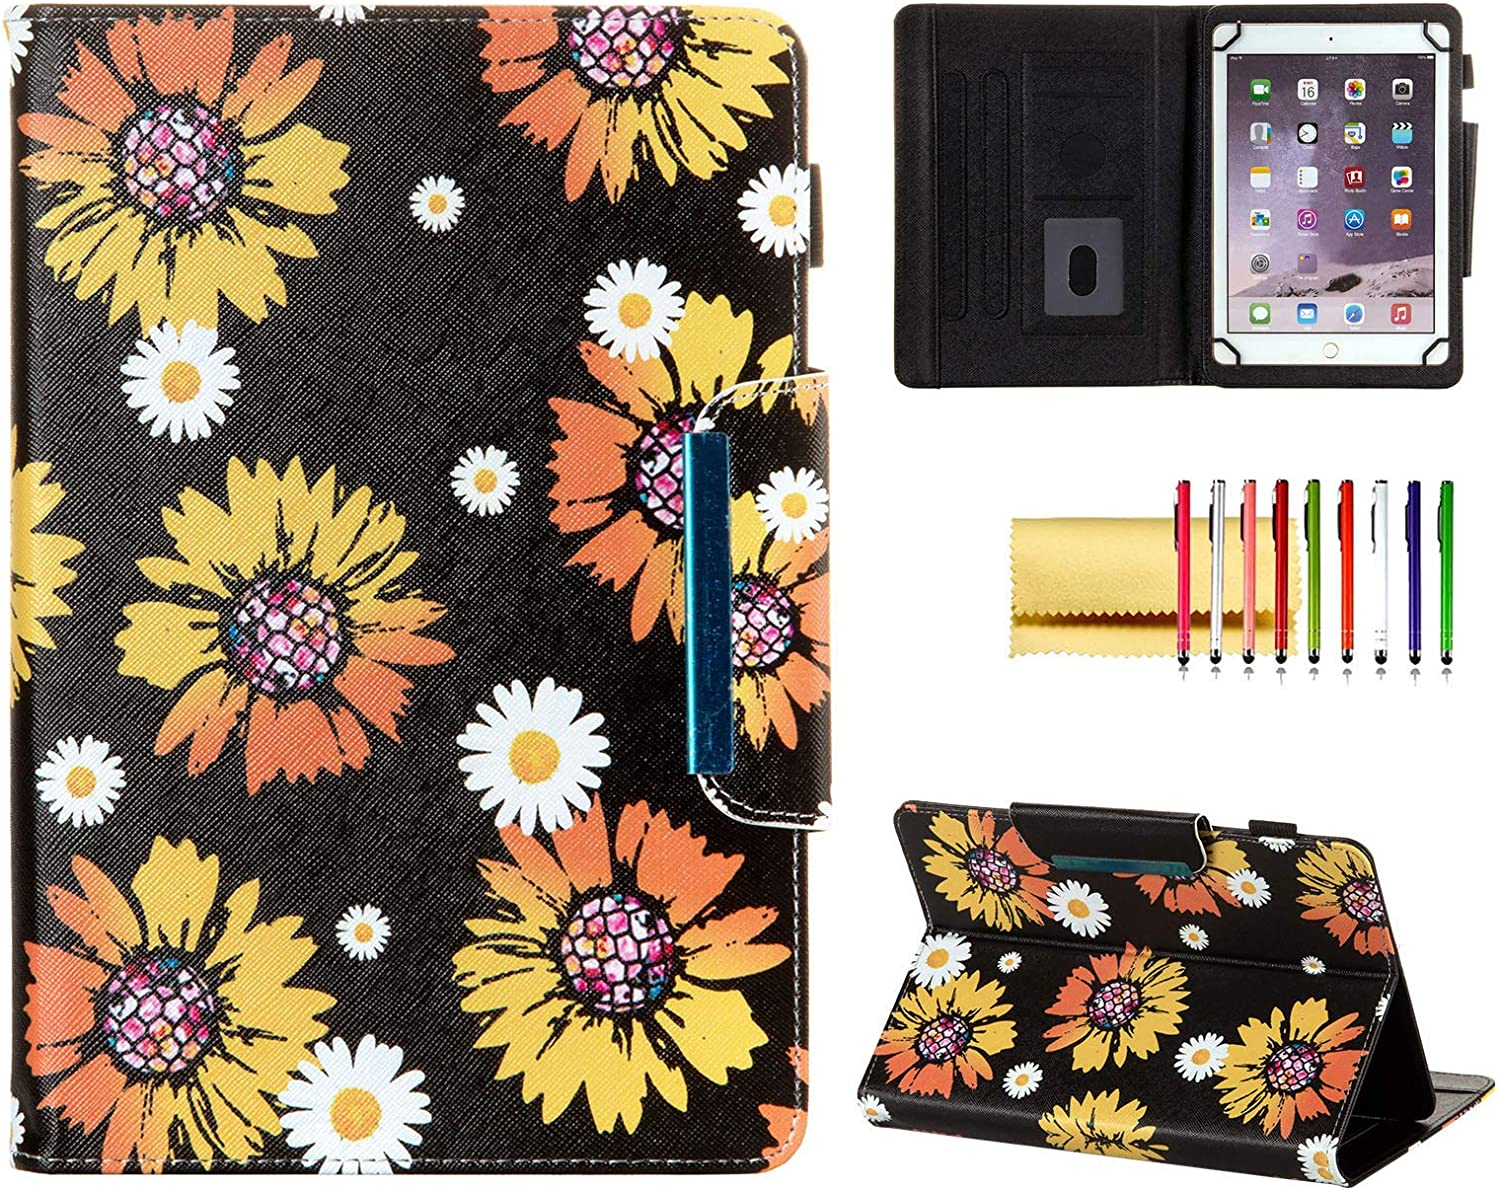 Universal Case for 8 Inch Tablet, Techcircle Light Stand Folio Magnetic Cover Case for Asus ZenPad 8 Z8s, LG G Pad X 2 3 4 F 8.0 8.3, iPad Mini, Fire HD 8 & Most 8.0 Tablet Computers, Sunflowers